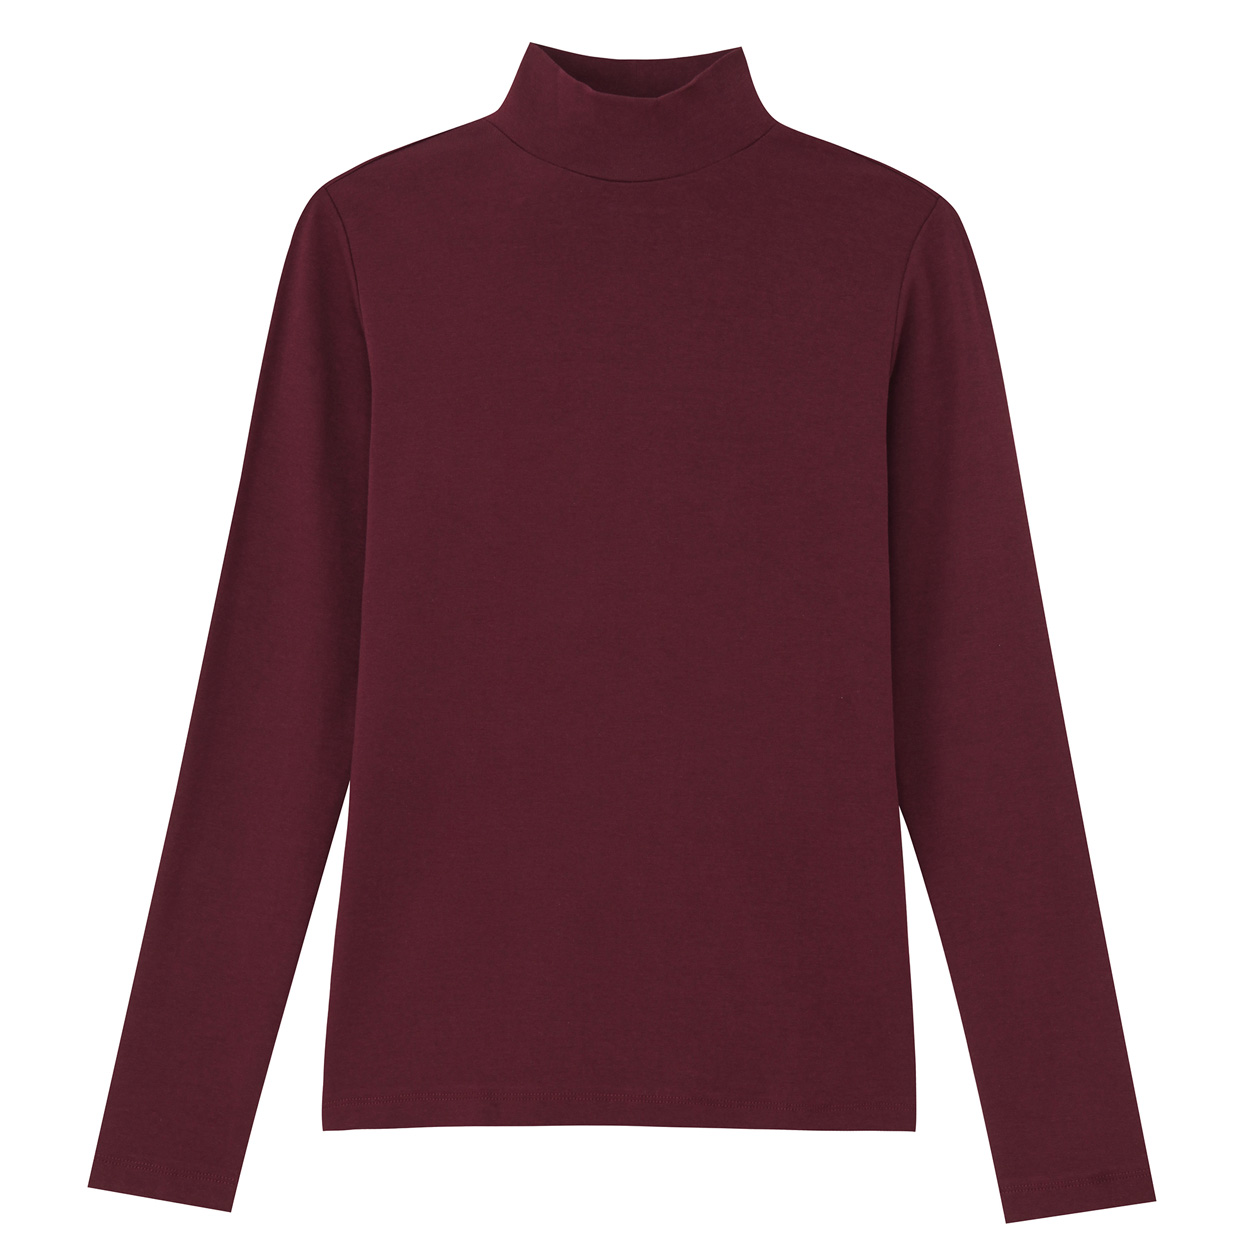 Stretch High Neck T-shirt Bordeaux, U.P. $15.90-$39 (Any 2 Less 10%)